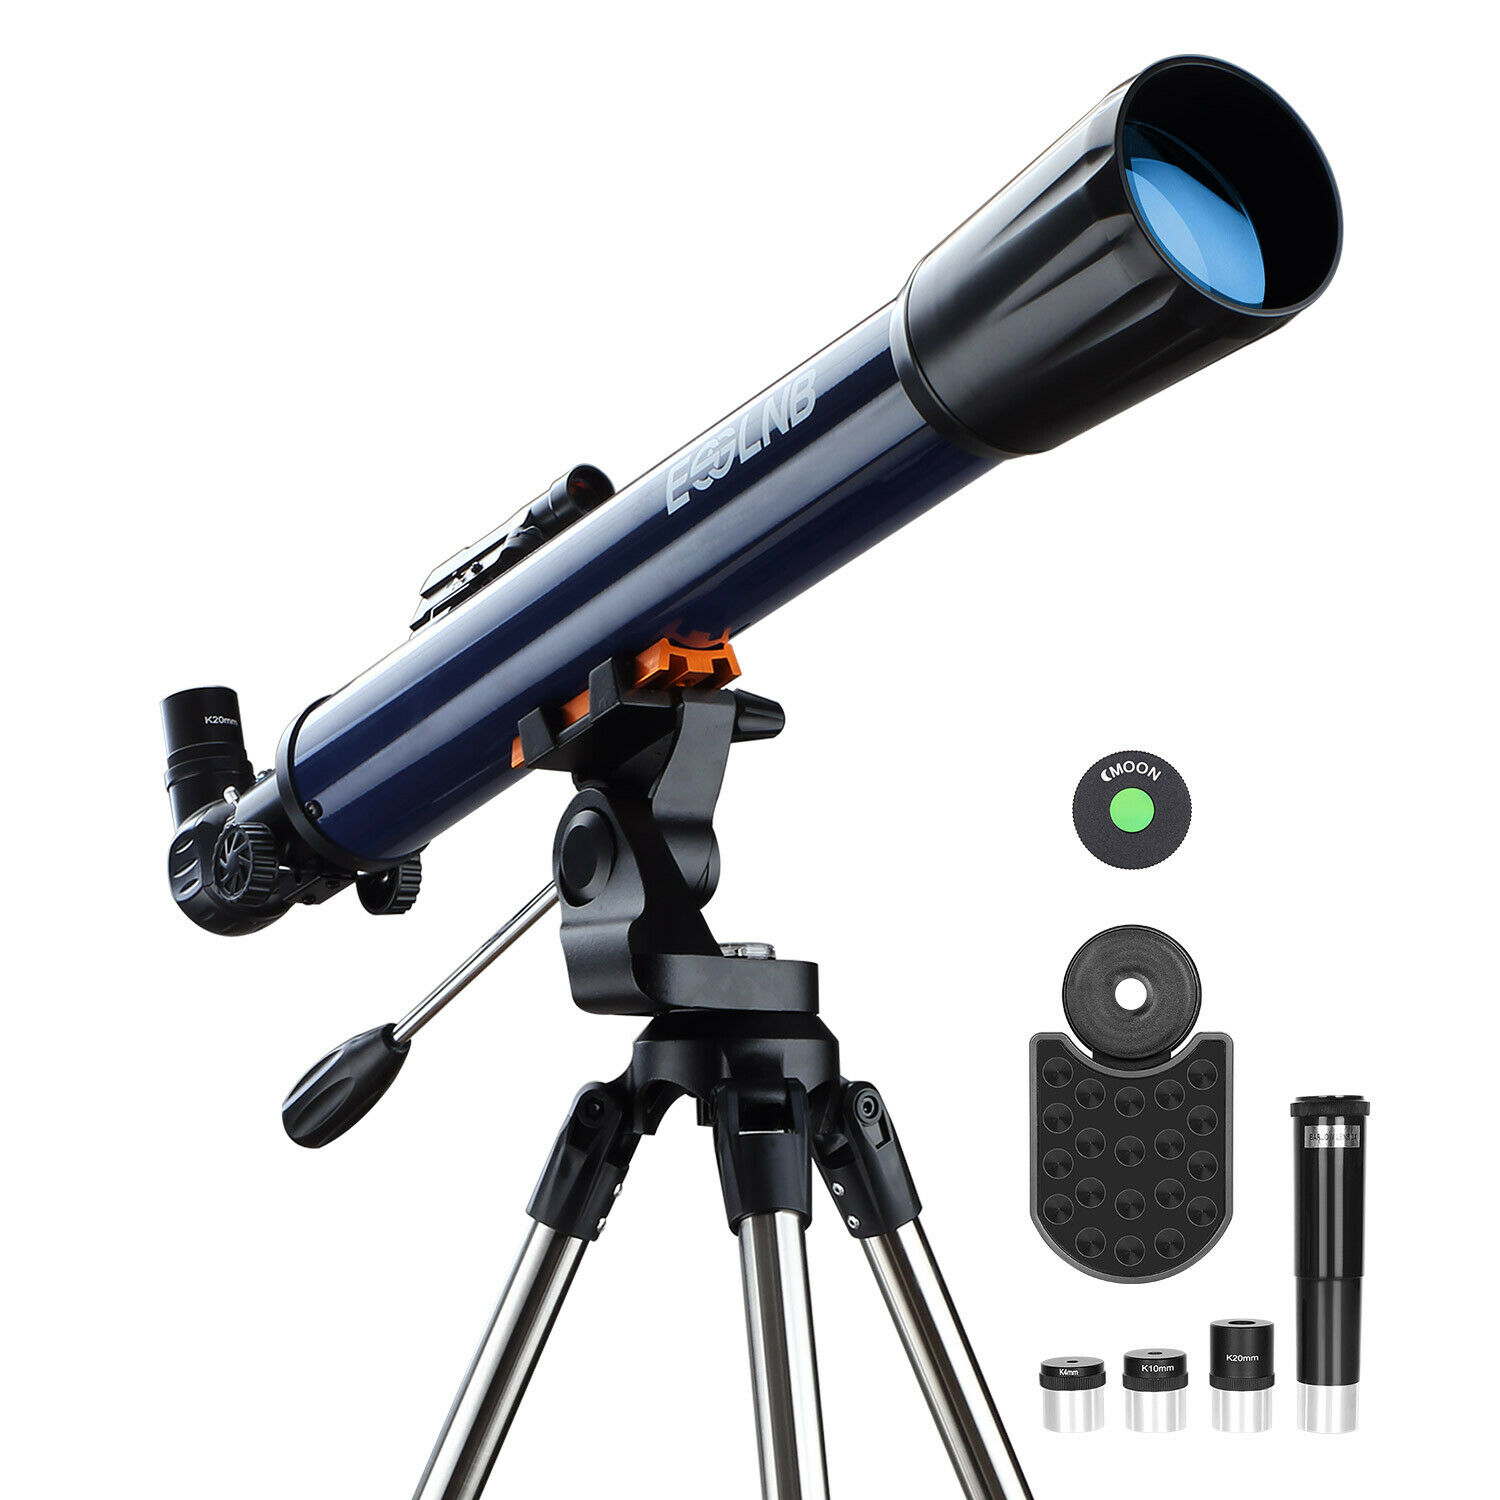 70700 Telescope High Magnification Astronomical Refractive Eyepiece Tripod Space